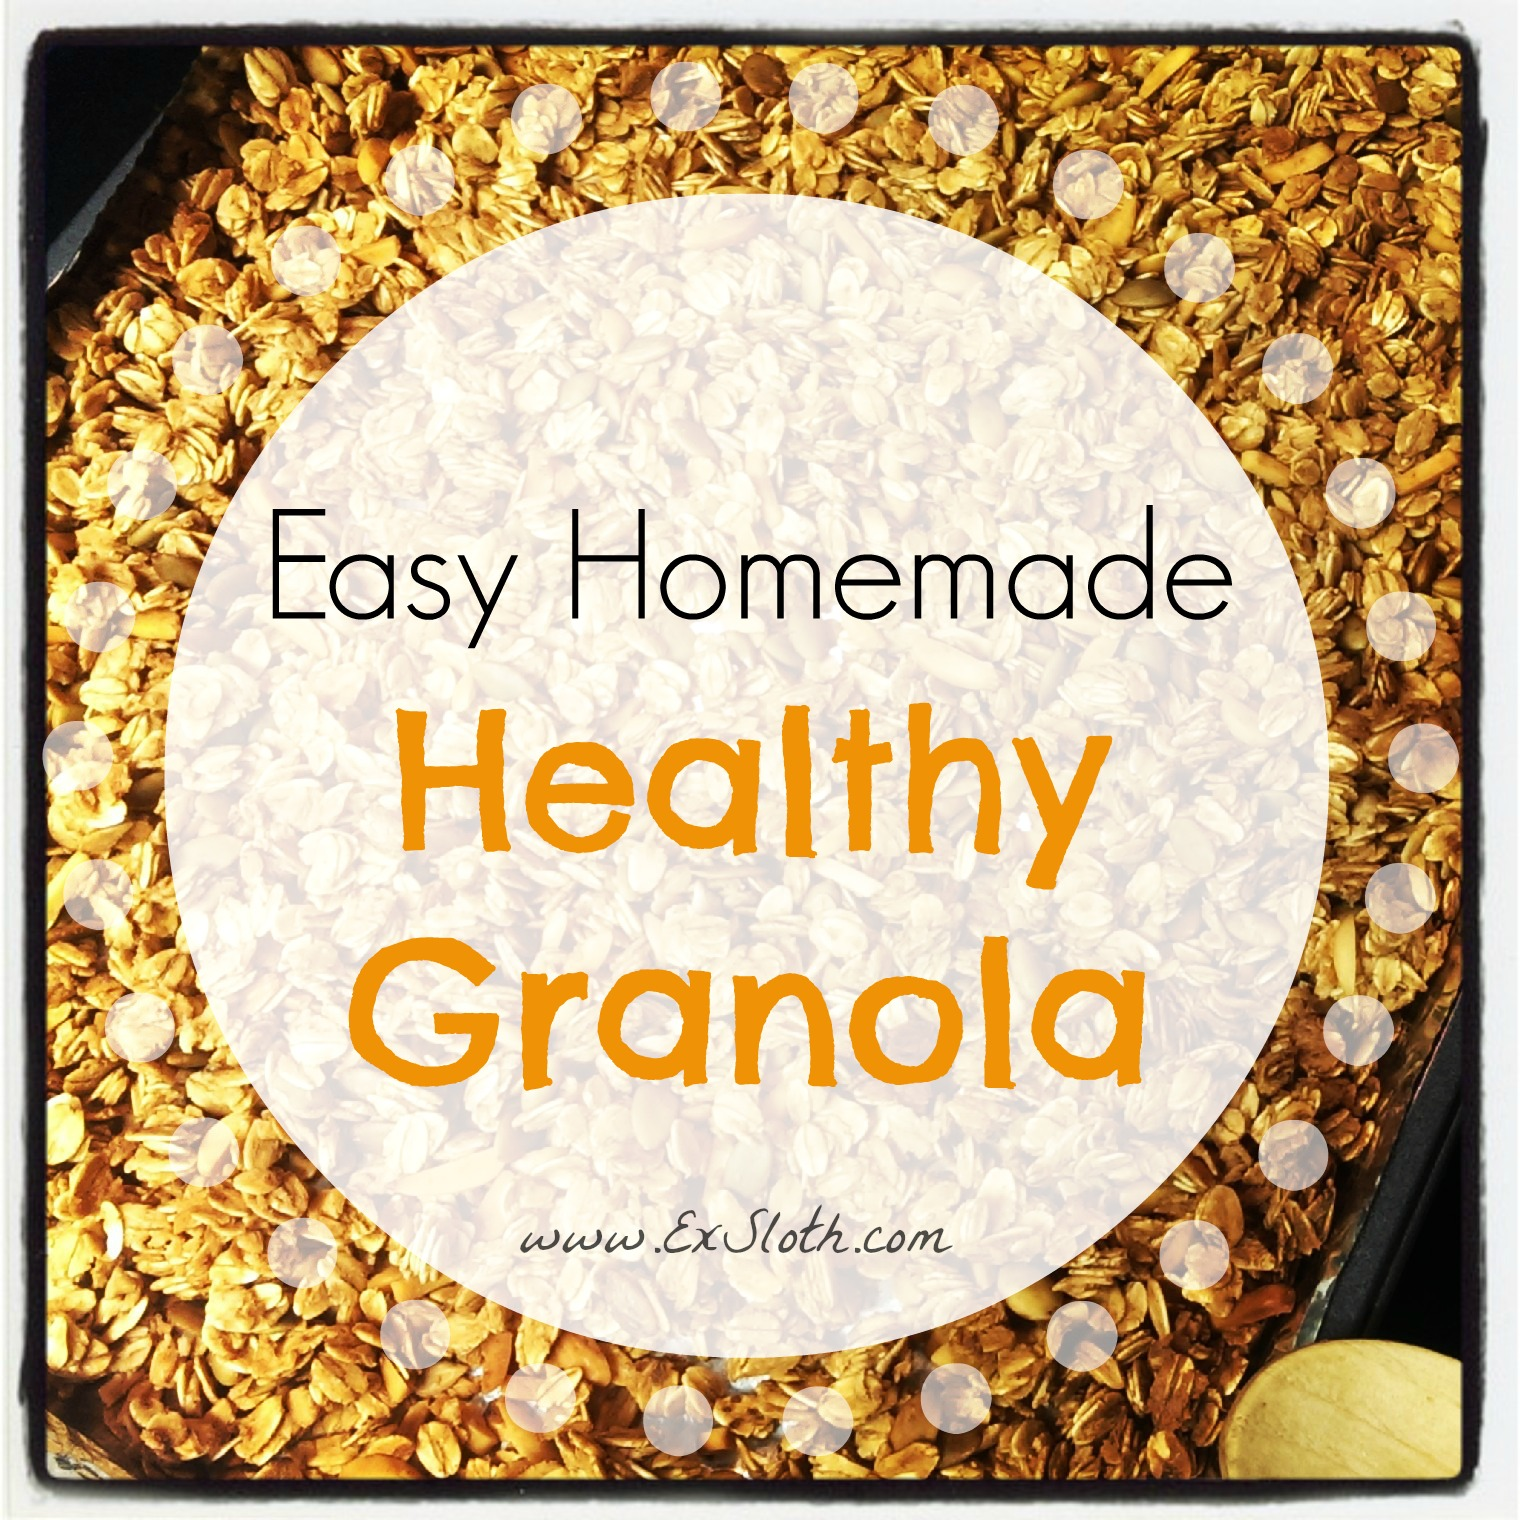 Easy Homemade Healthy Granola - Diary of an ExSloth